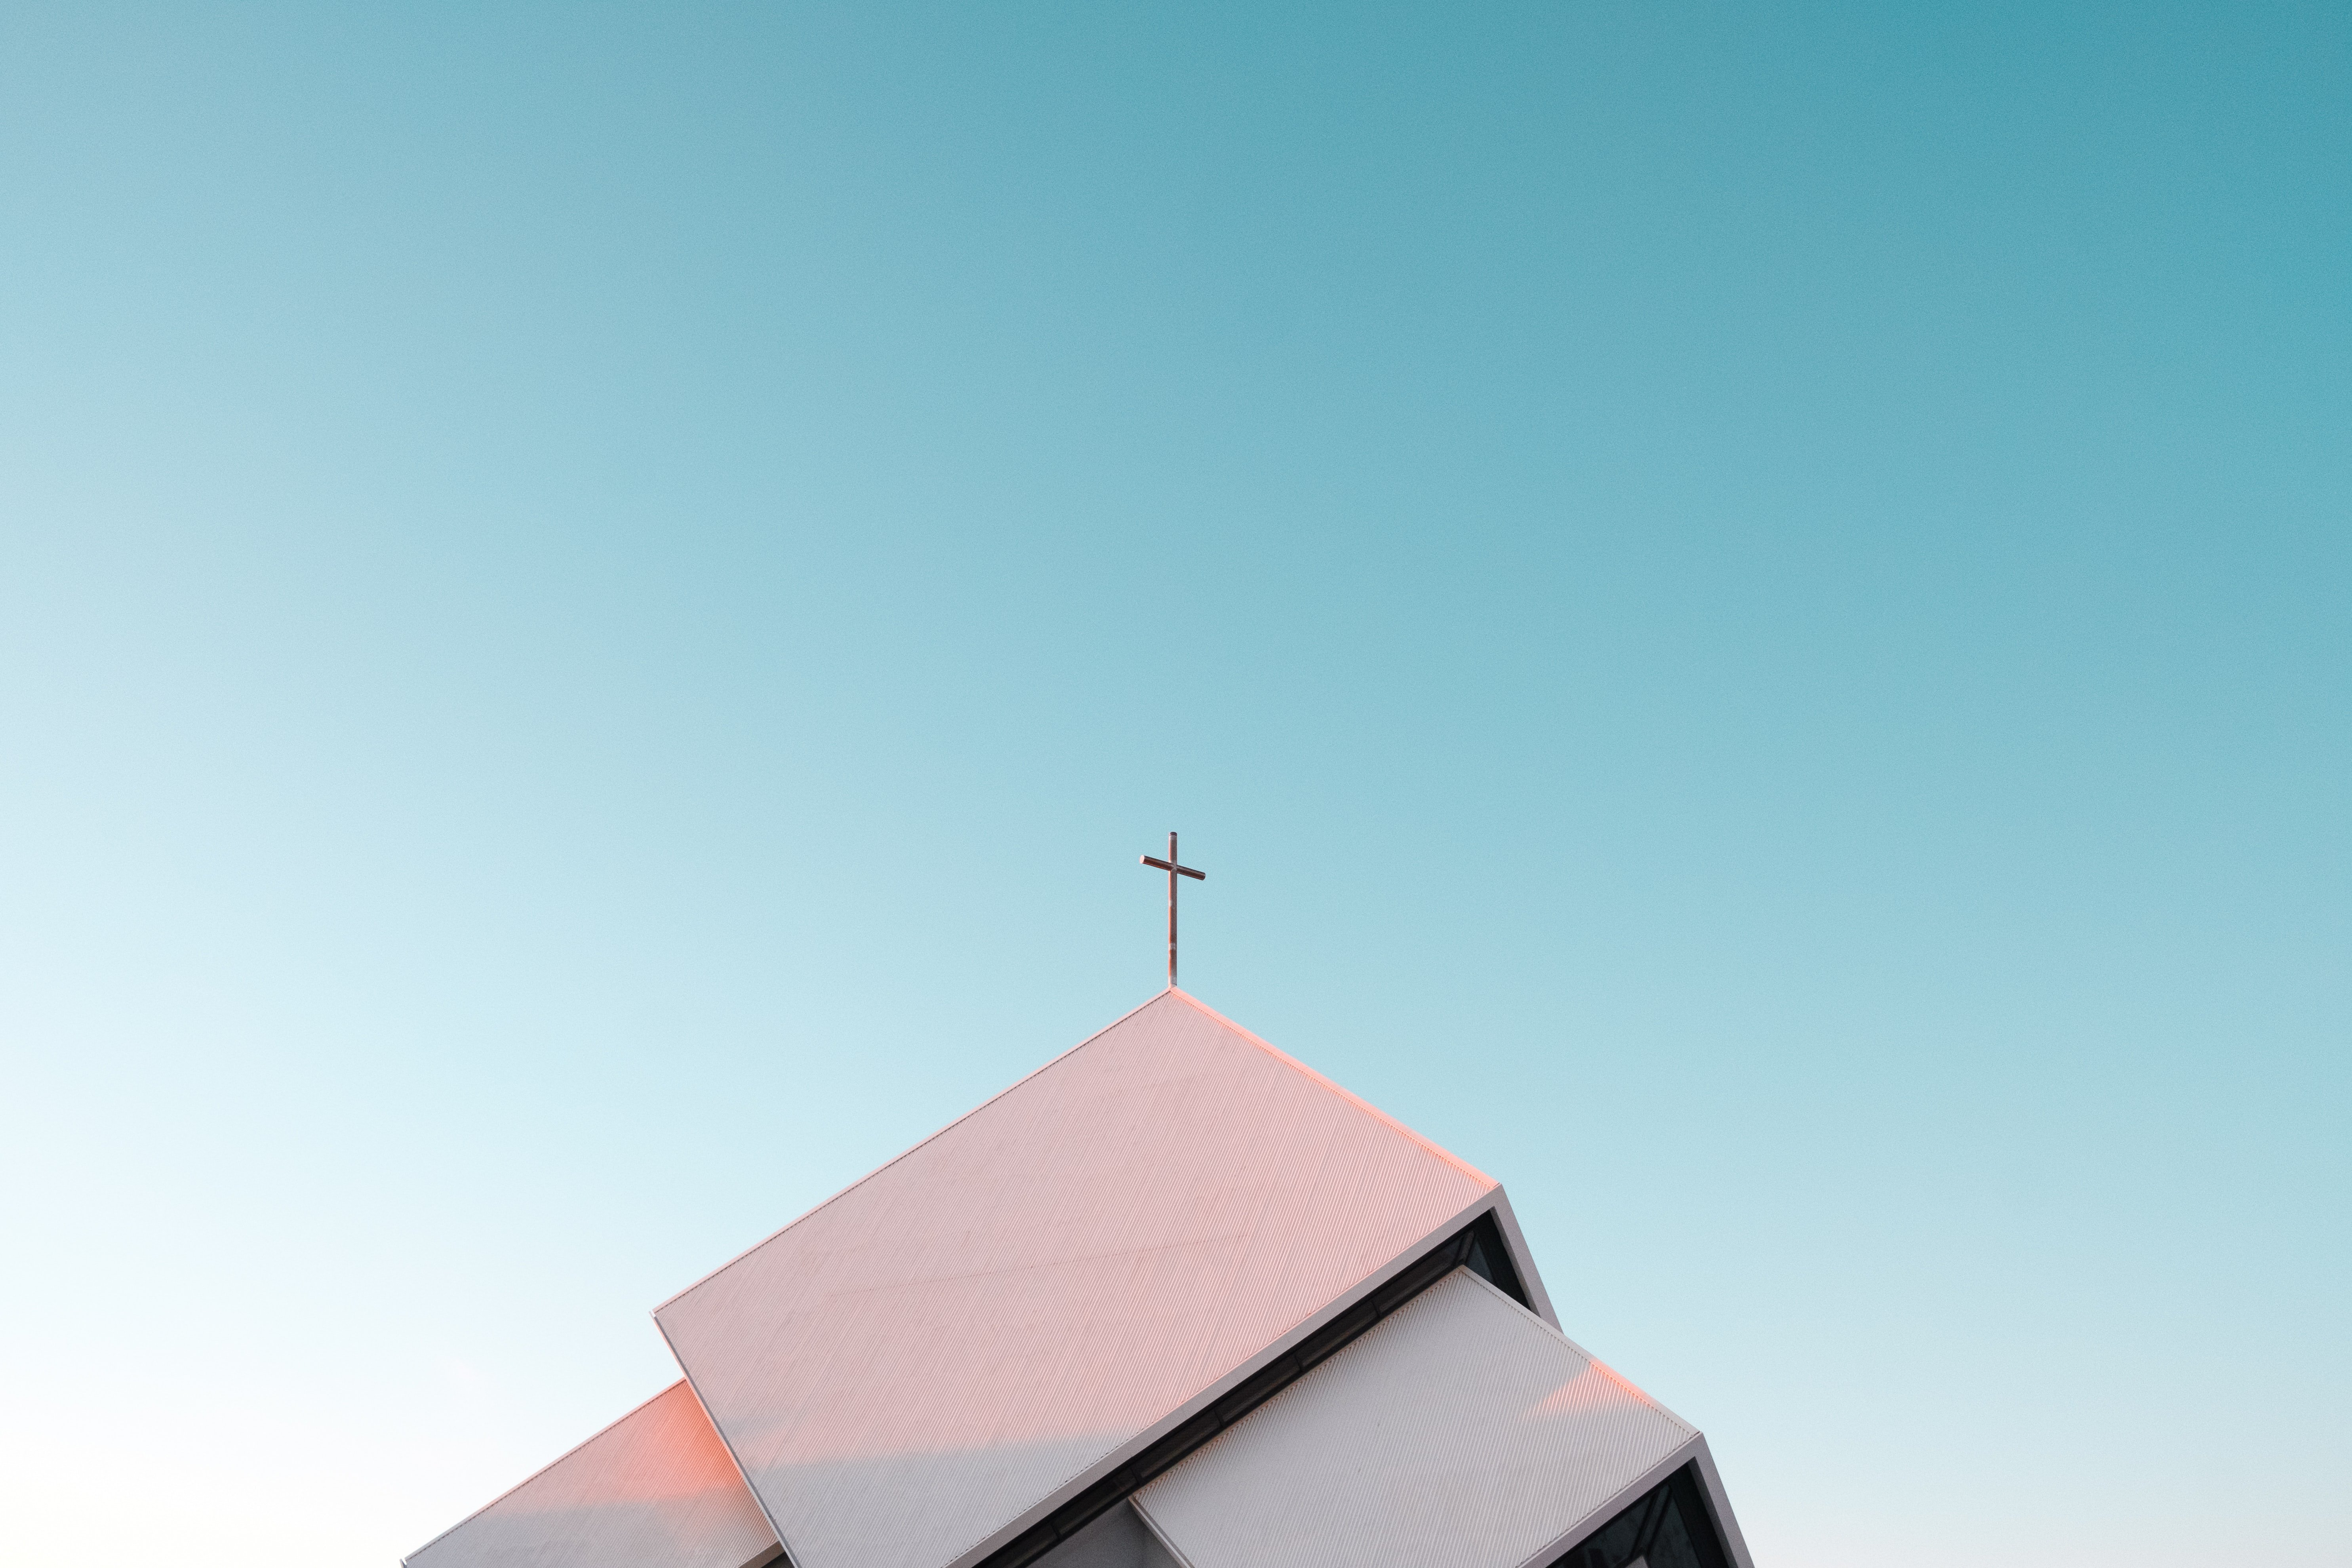 Potential for tax reforms to unify church factions?